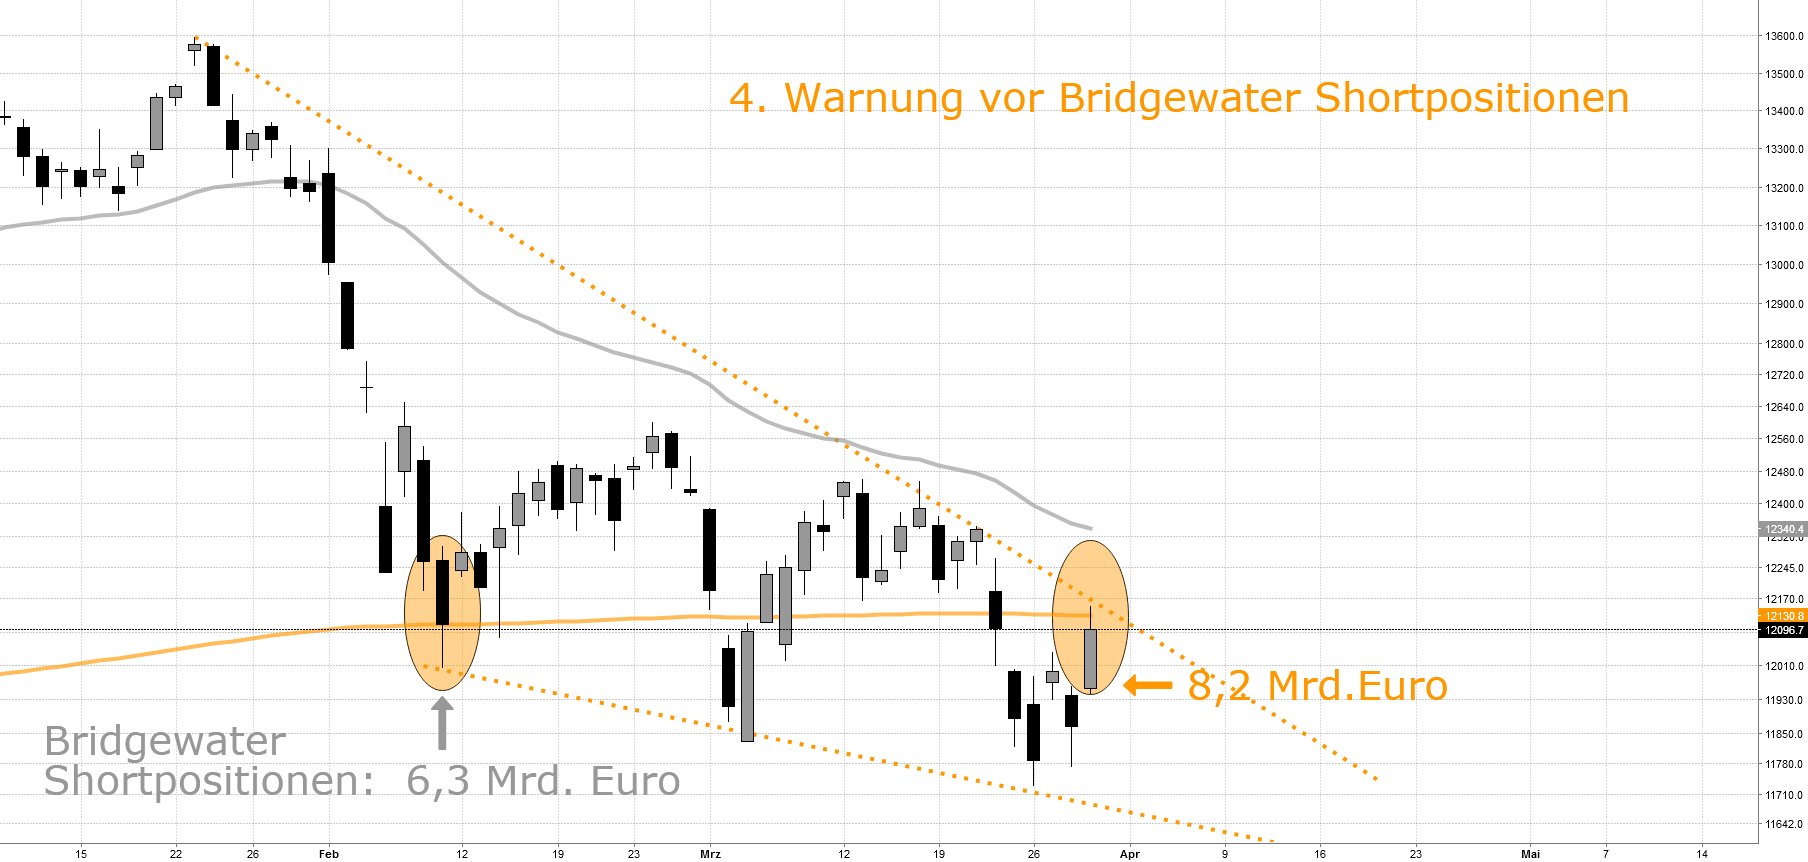 4. Warnung vor Bridgewater (mind.) 20 Mrd. Netto Short Position